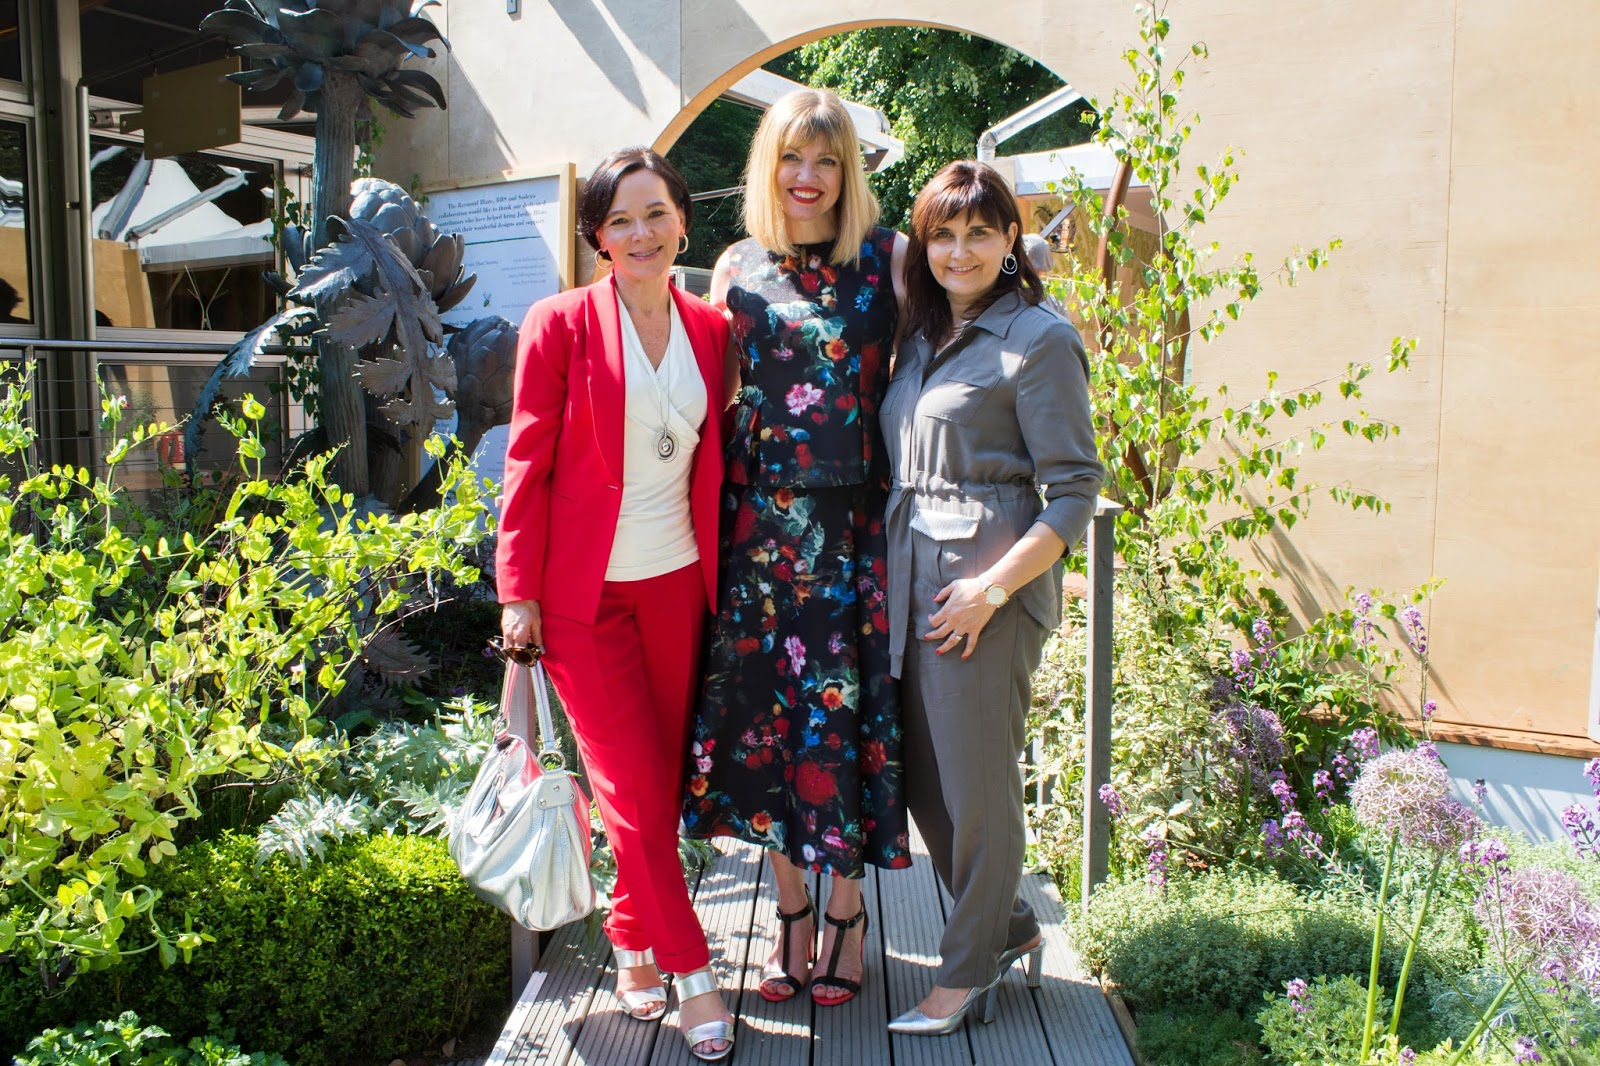 Chelsea flower show outfits for women over 40